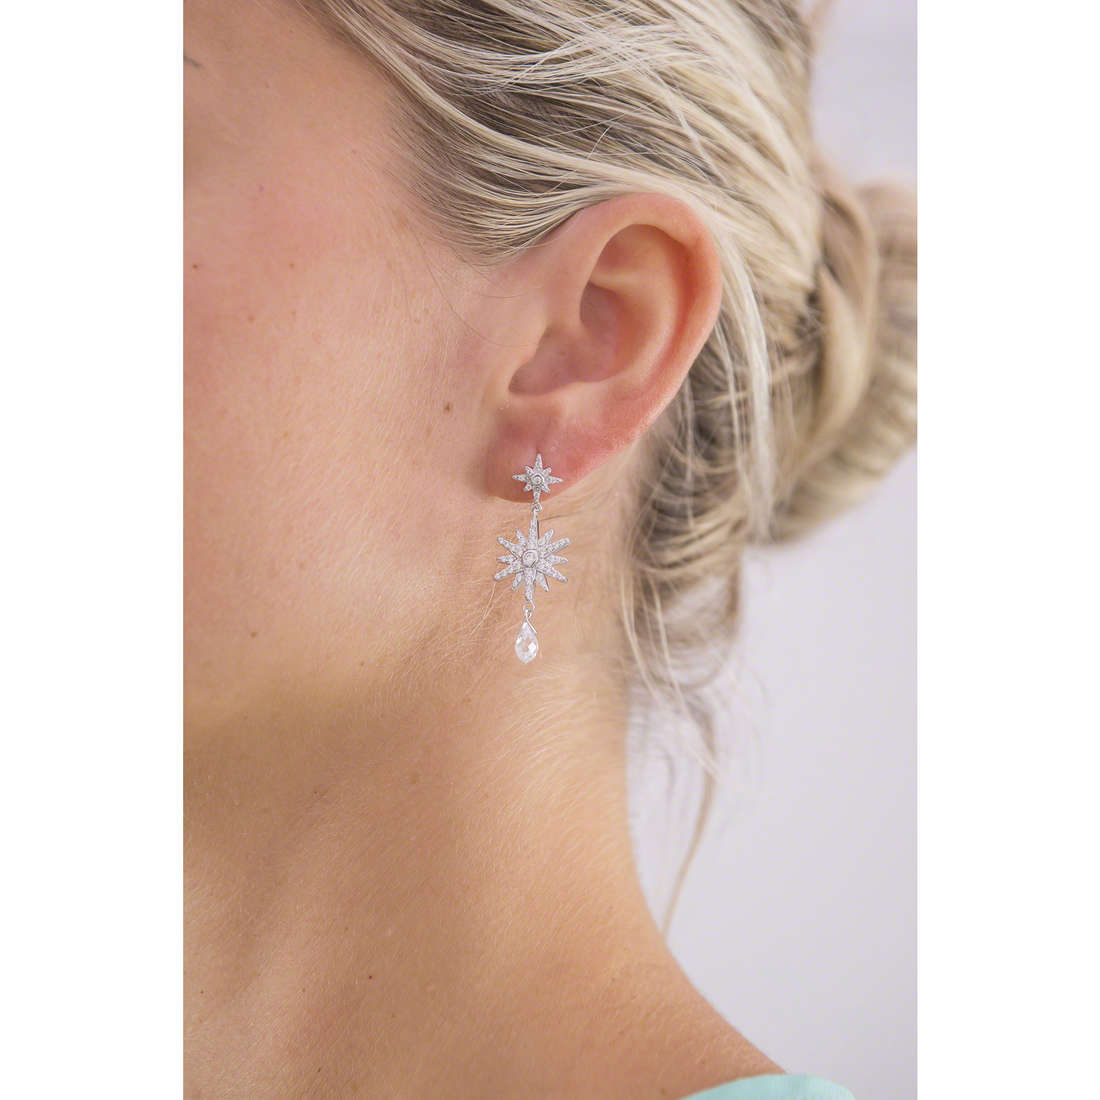 Morellato earrings Pura woman SAHR03 photo wearing